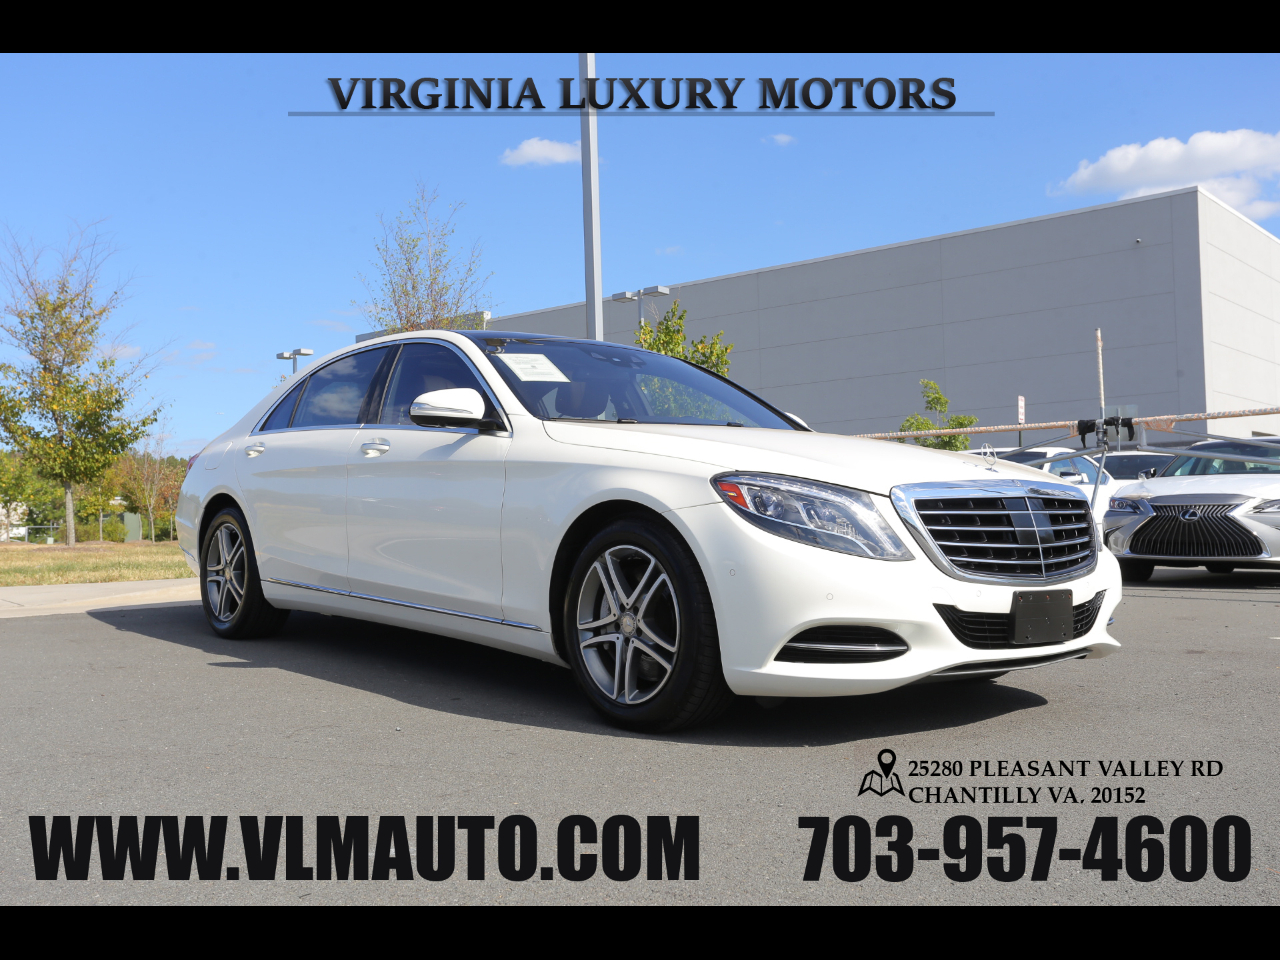 Pleasant Valley Motors >> Used Cars For Sale Chantilly Va 20152 Virginia Luxury Motors